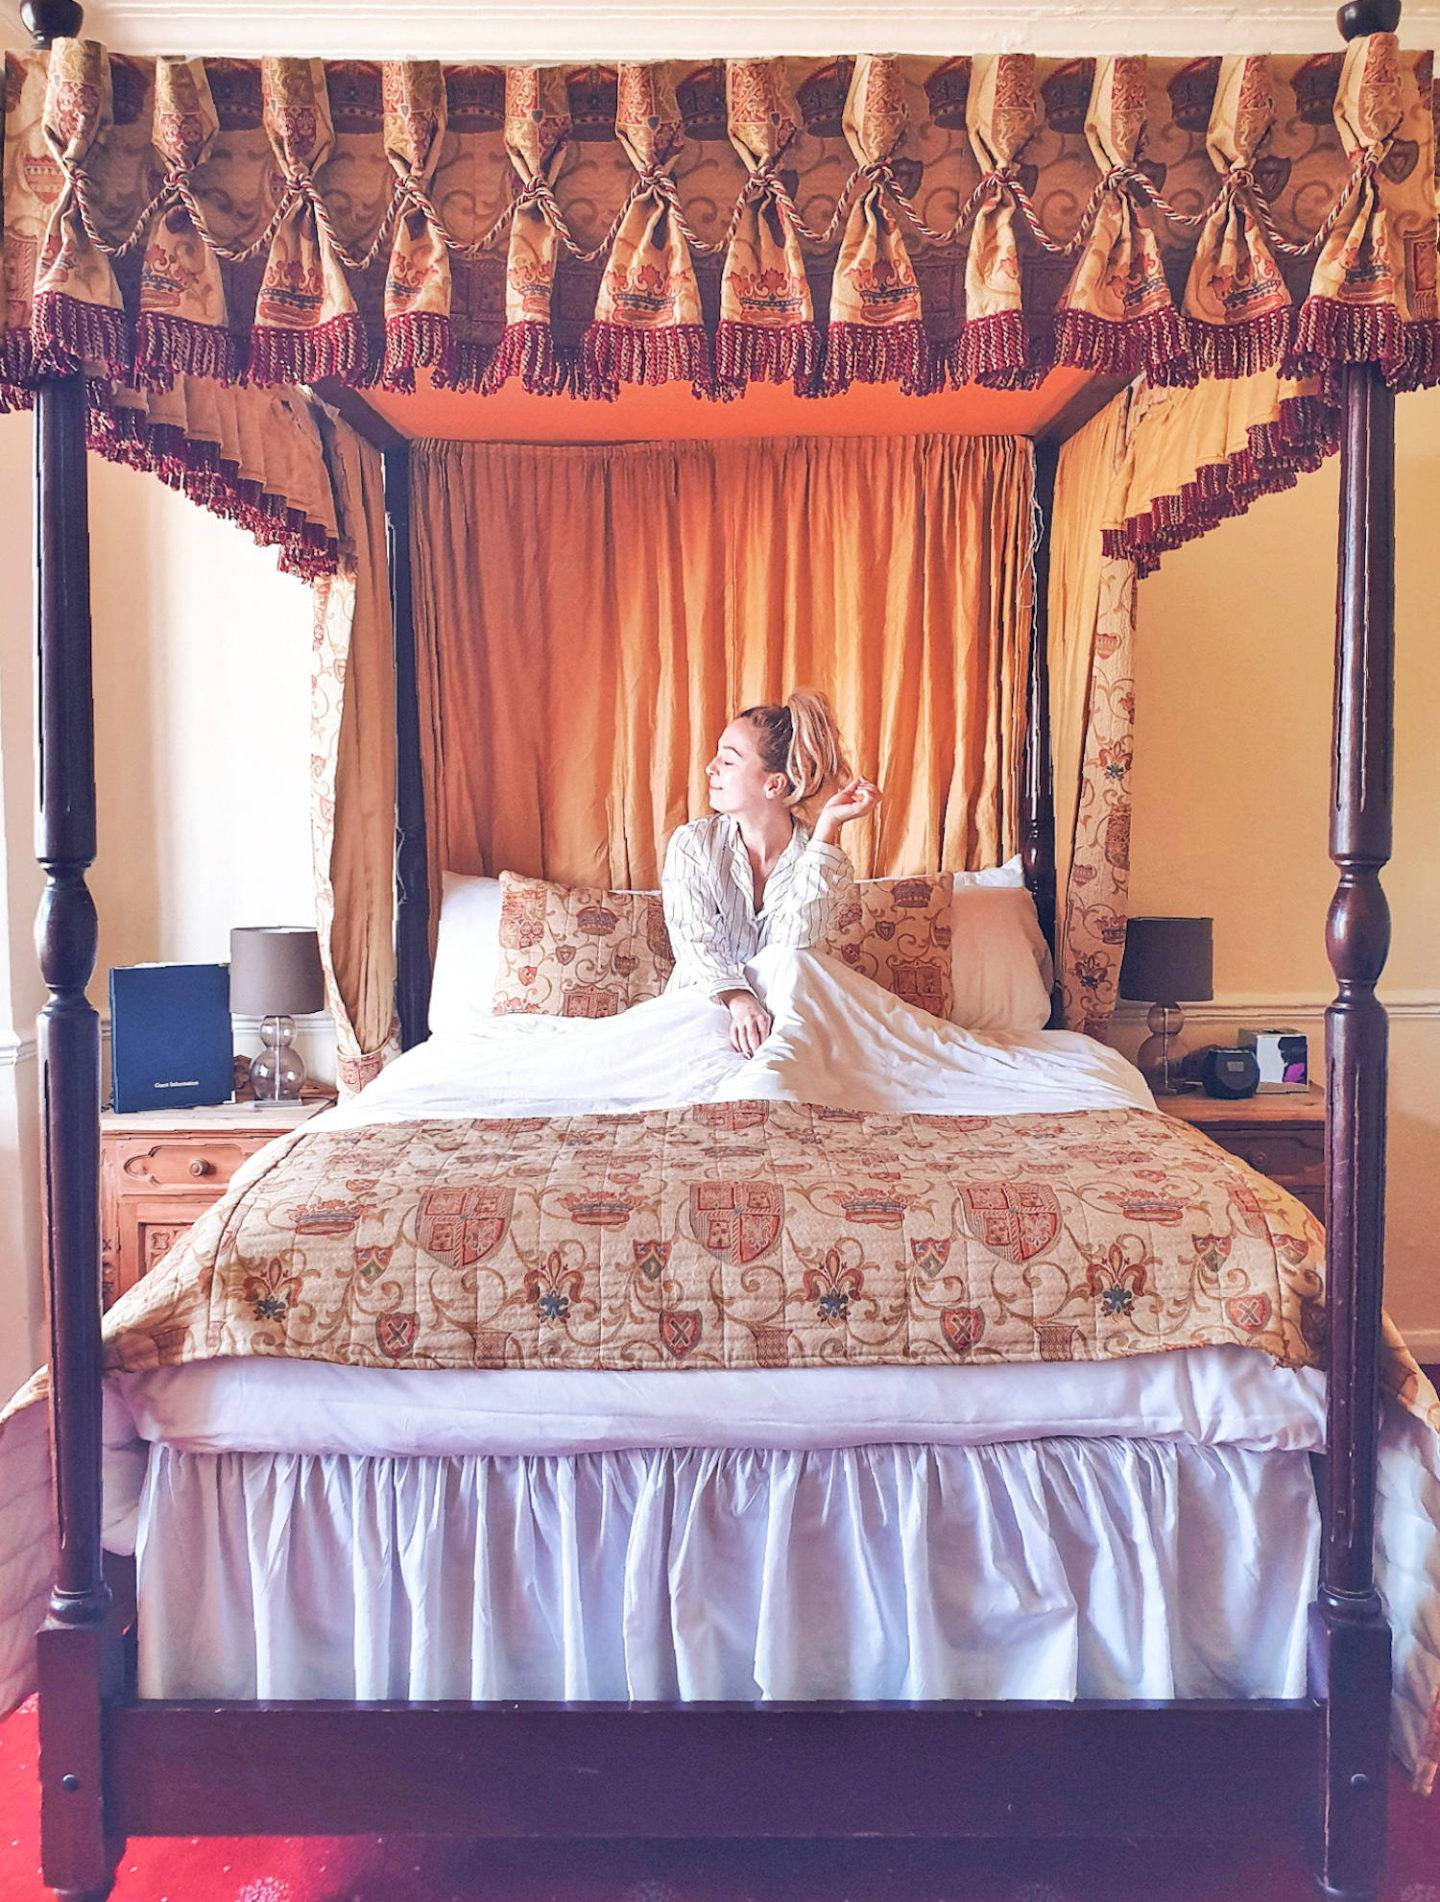 Castle hotel with four poster beds in North East EnglandCastle hotel with four poster beds in North East England